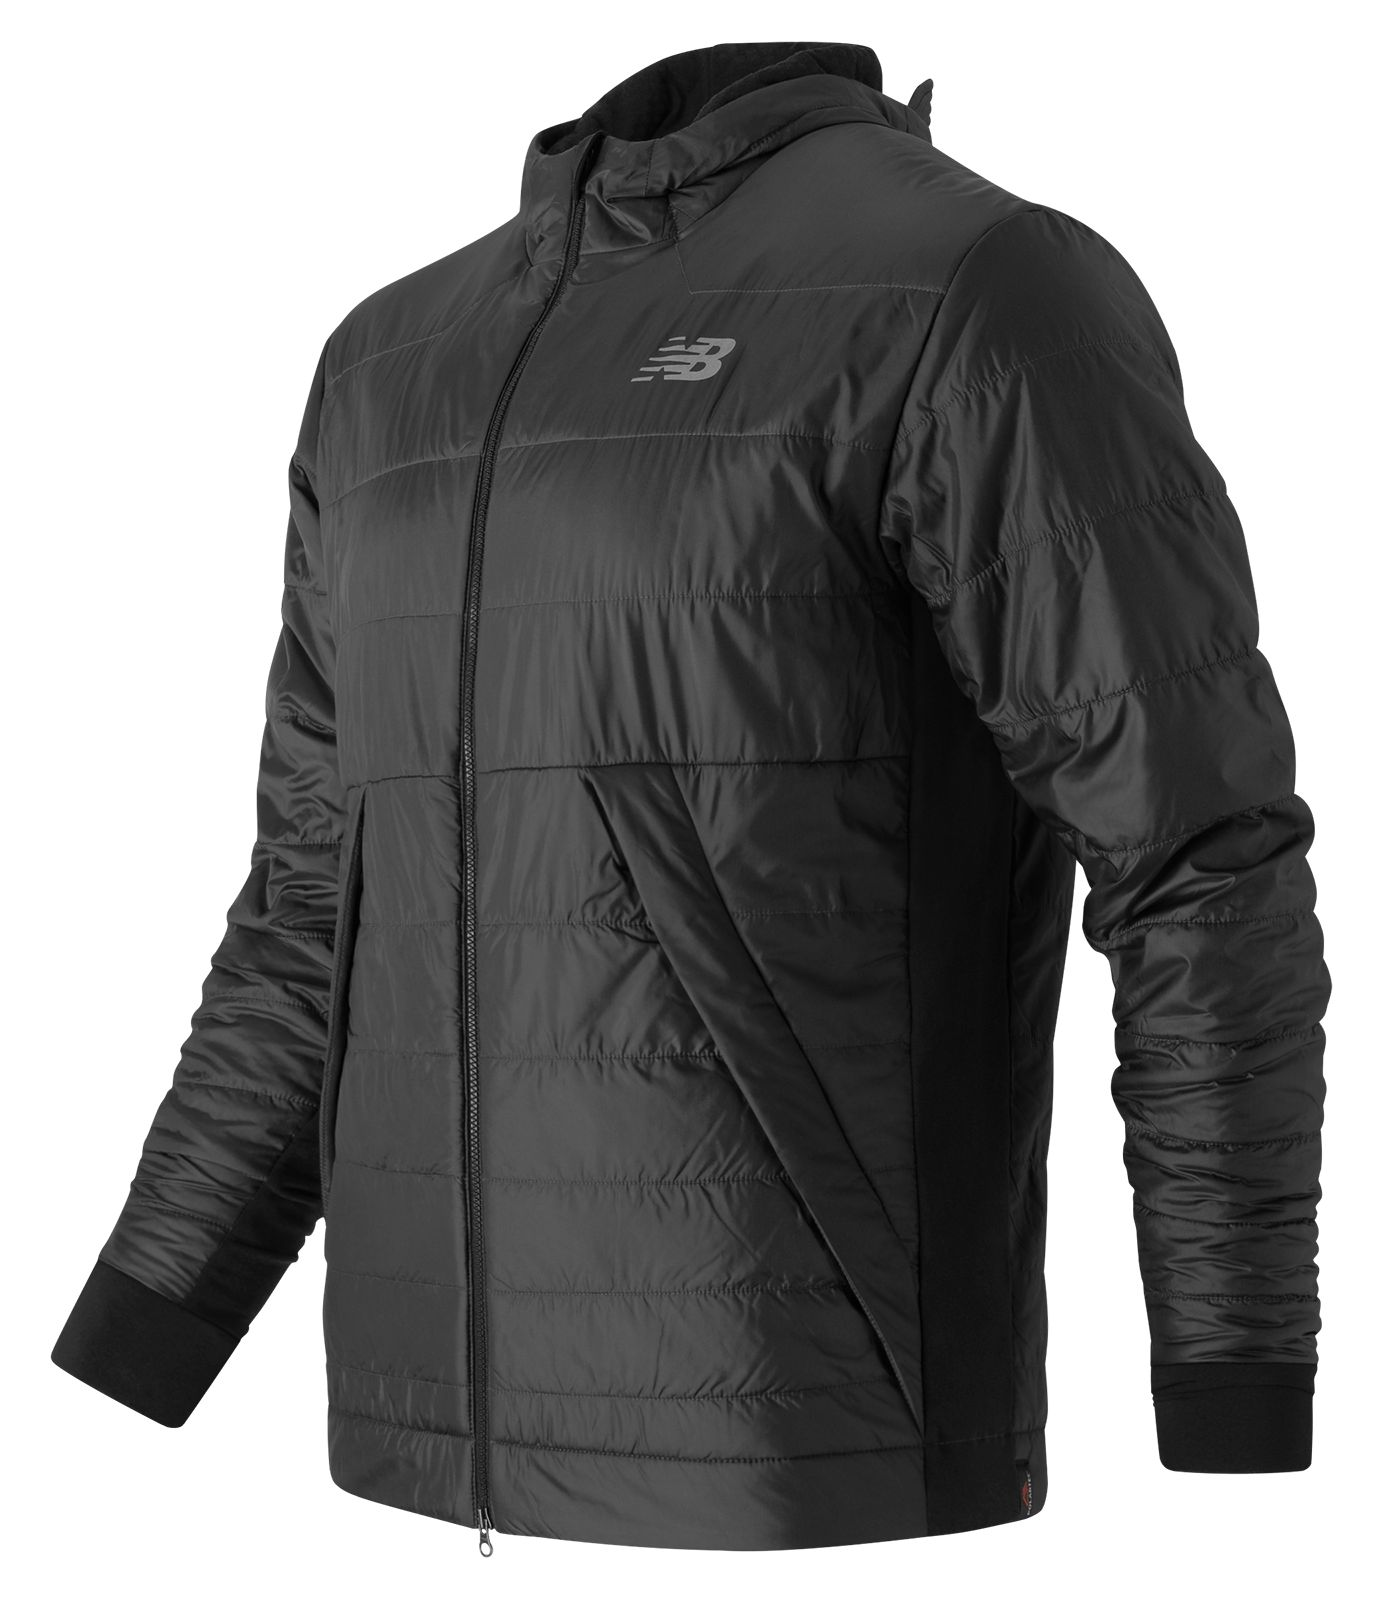 New Balance : NB Heat Hybrid Jacket : Men's Performance : MJ63002BK